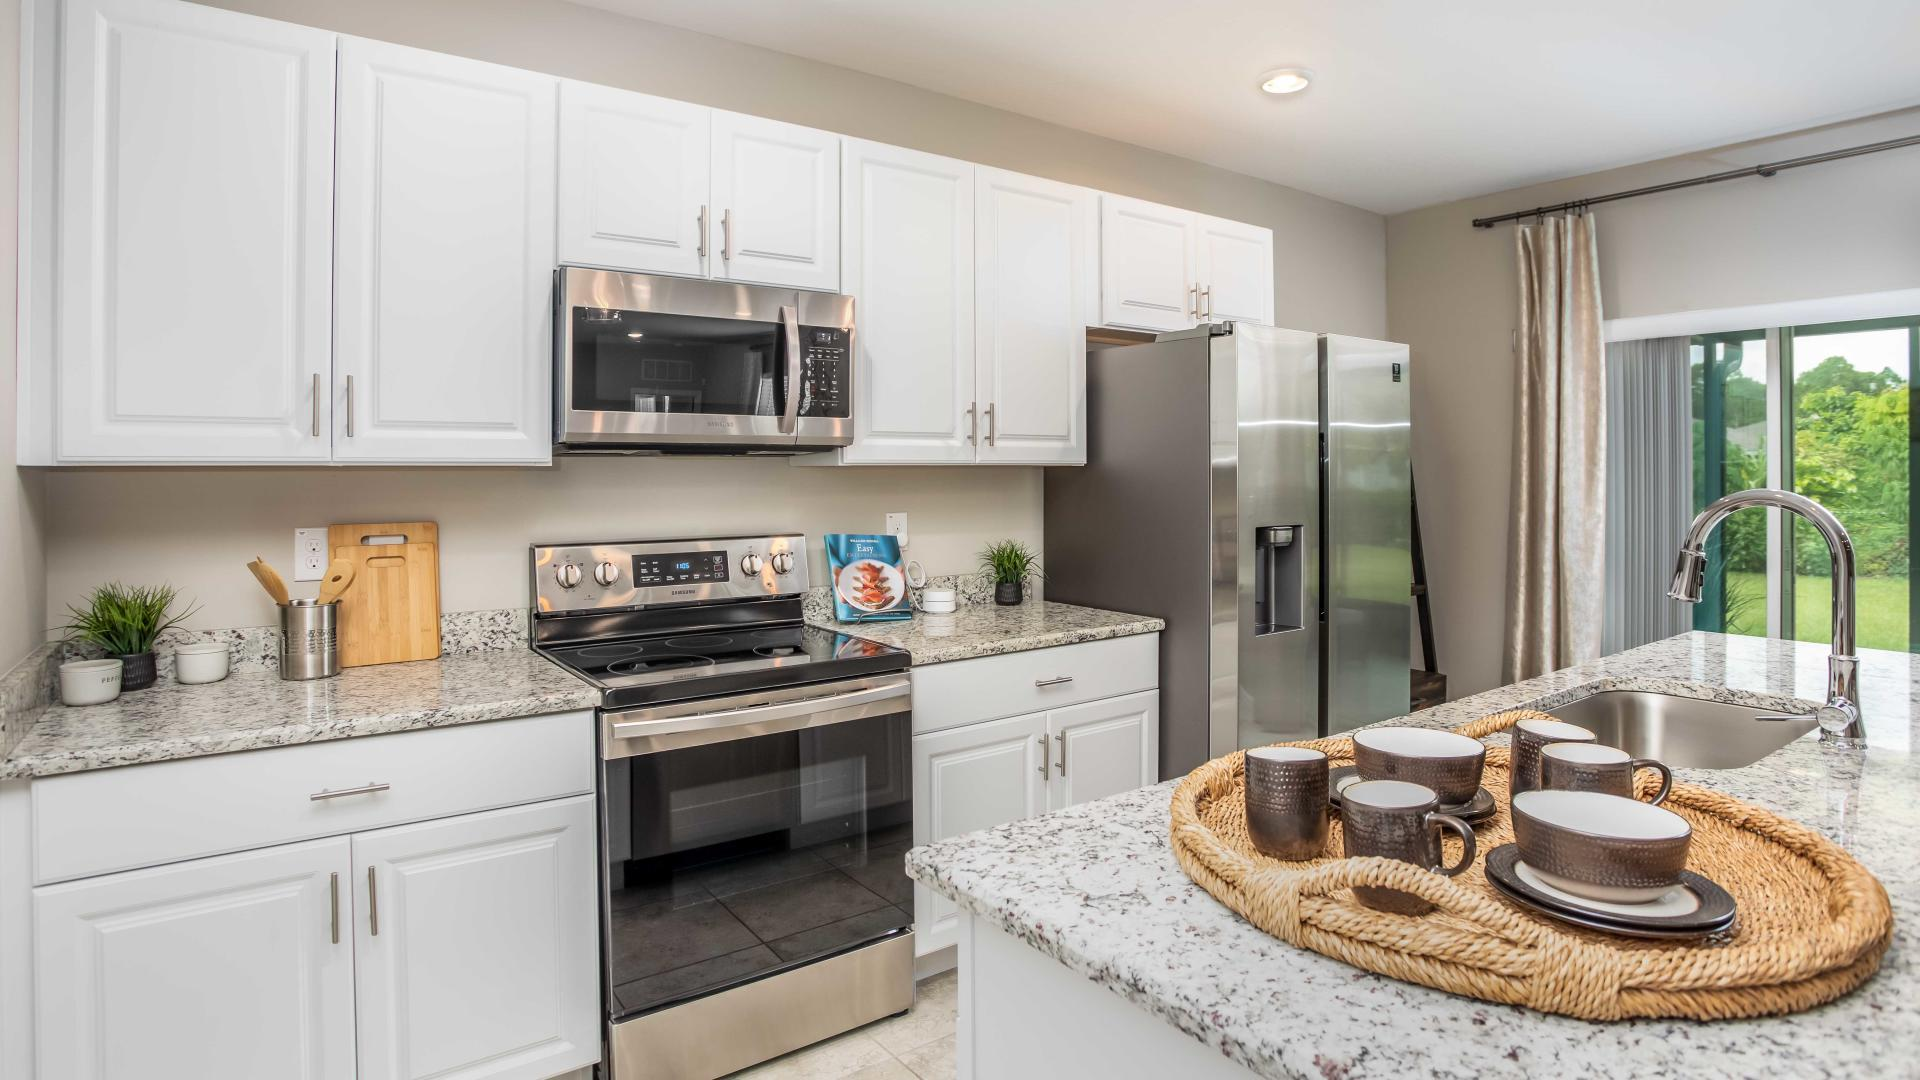 Kitchen featured in the Mesquite By Maronda Homes in Daytona Beach, FL